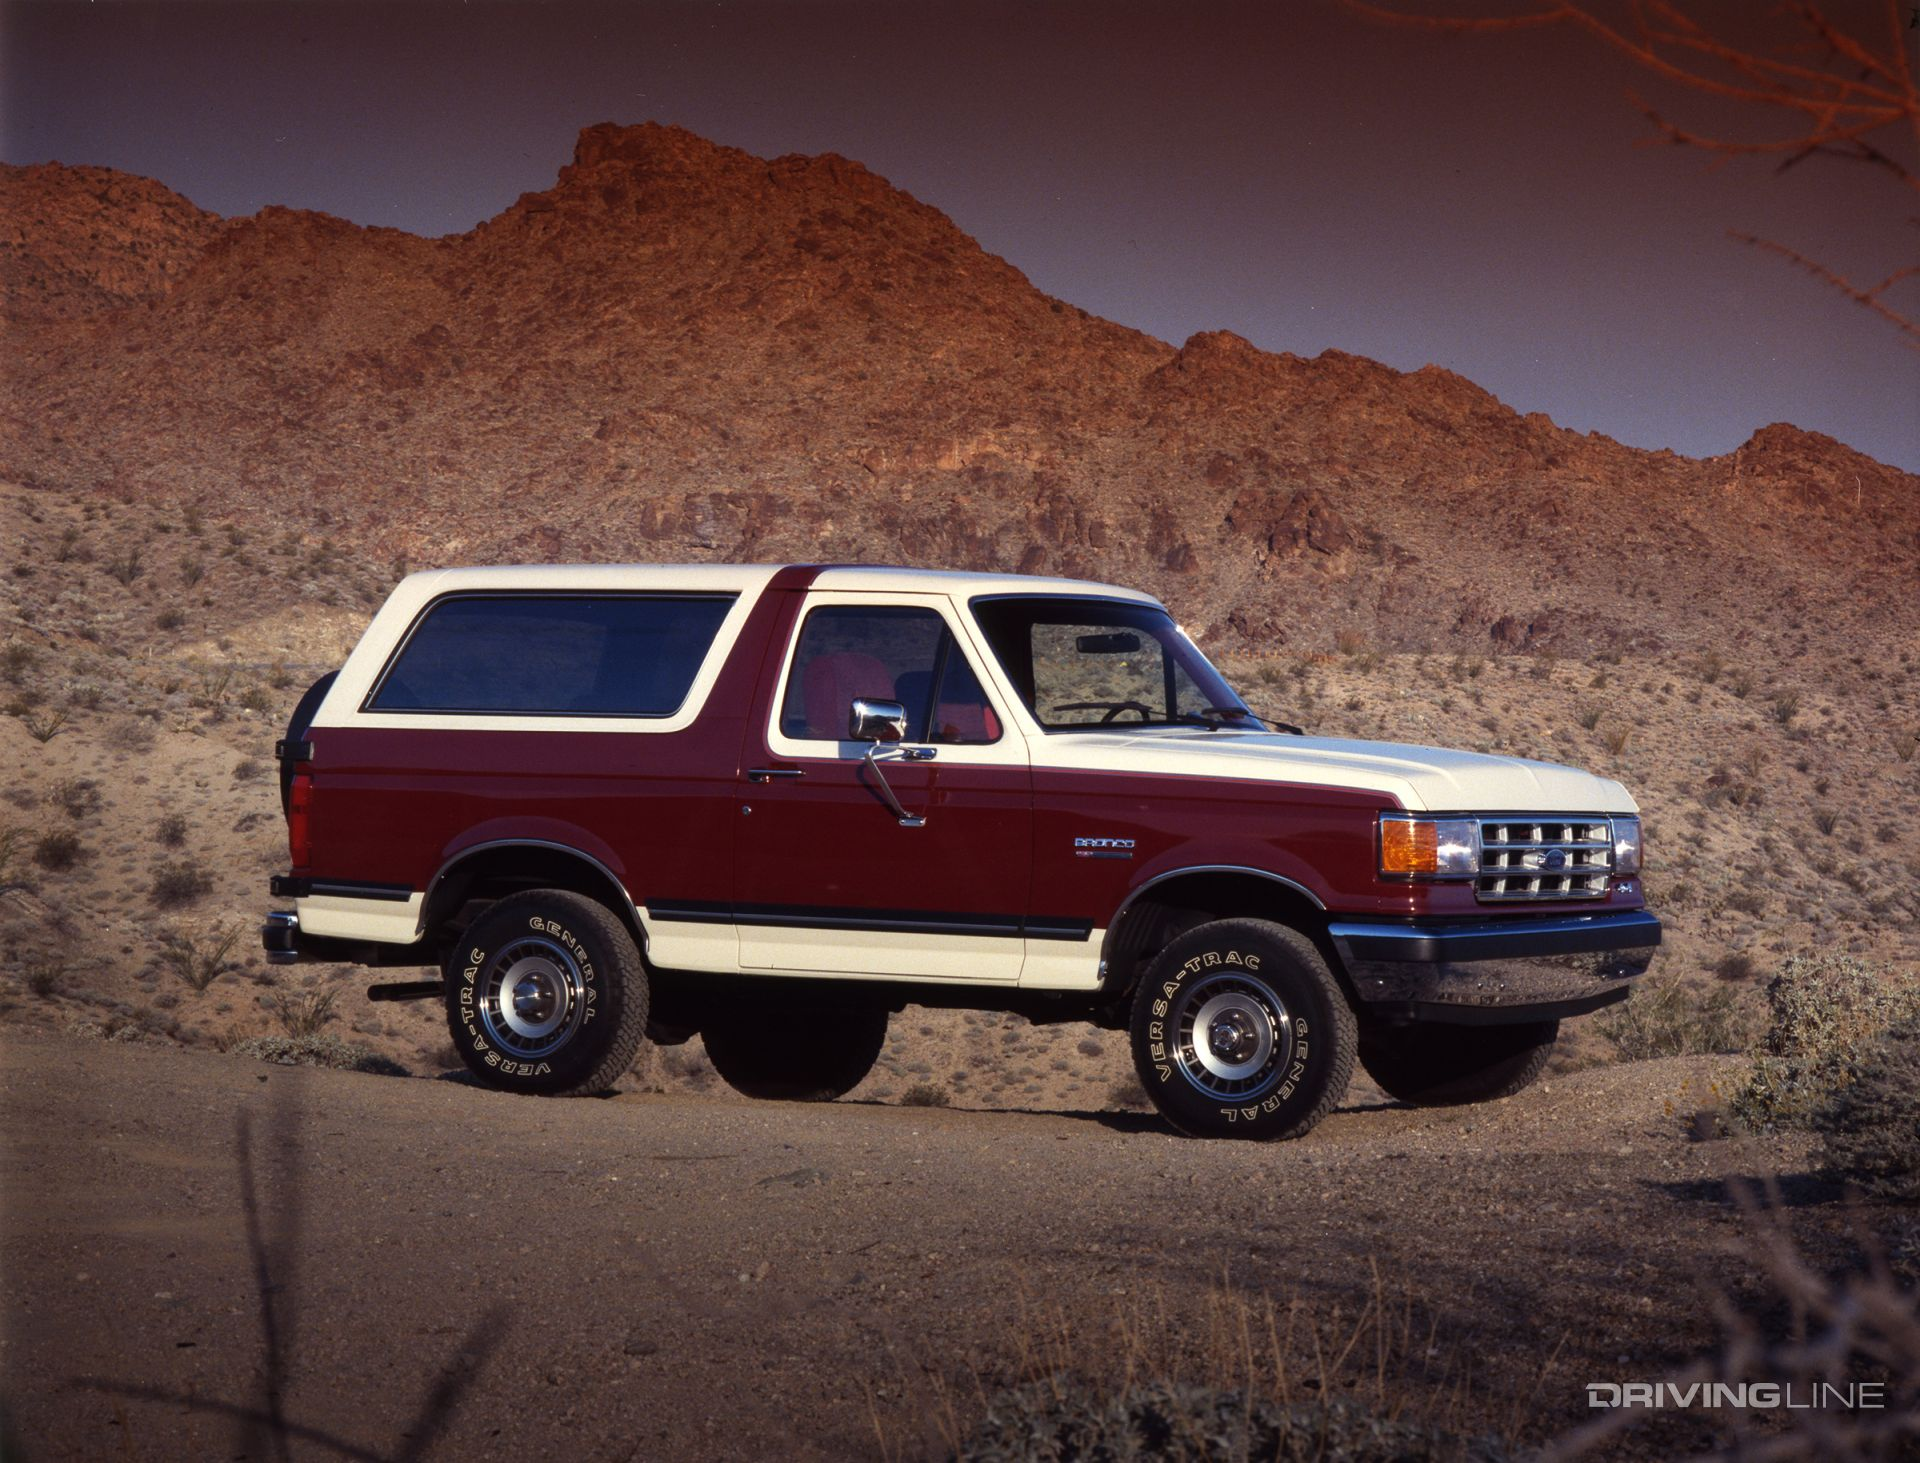 It's Official! The Ford Bronco Is Coming Back in 2020 | DrivingLine